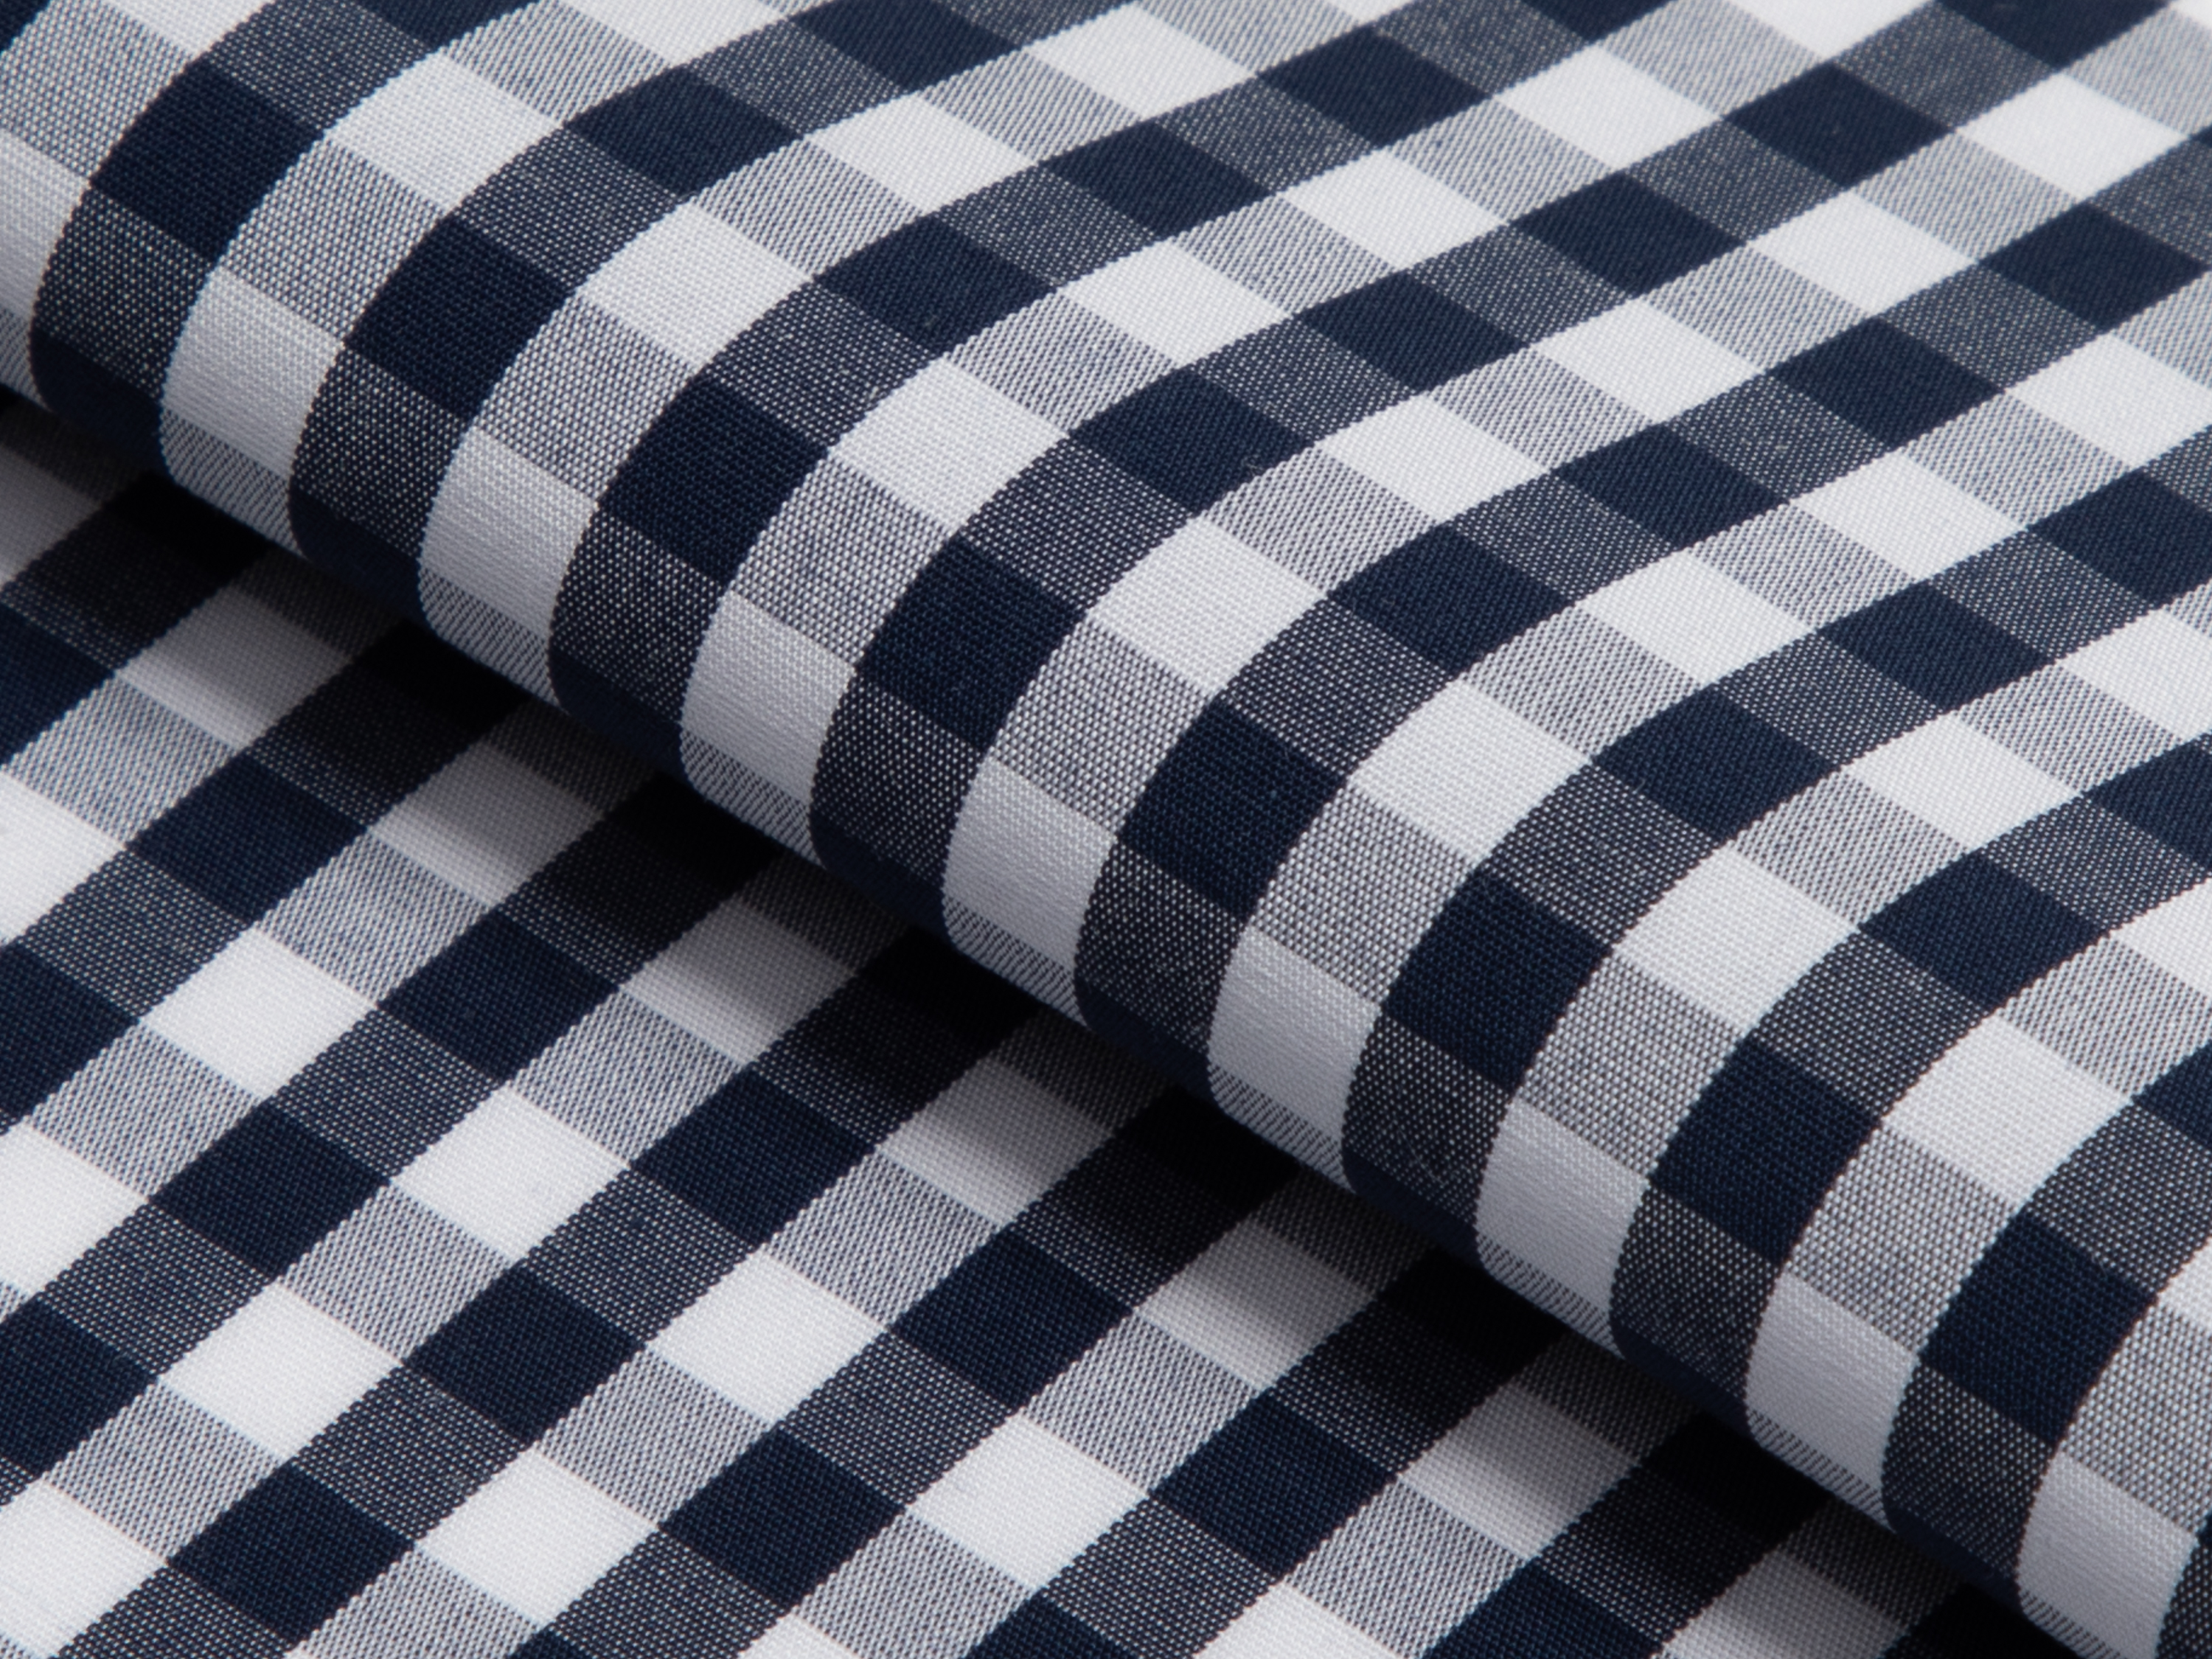 Buy tailor made shirts online - GINGHAM LUXURY  - Gingham Navy